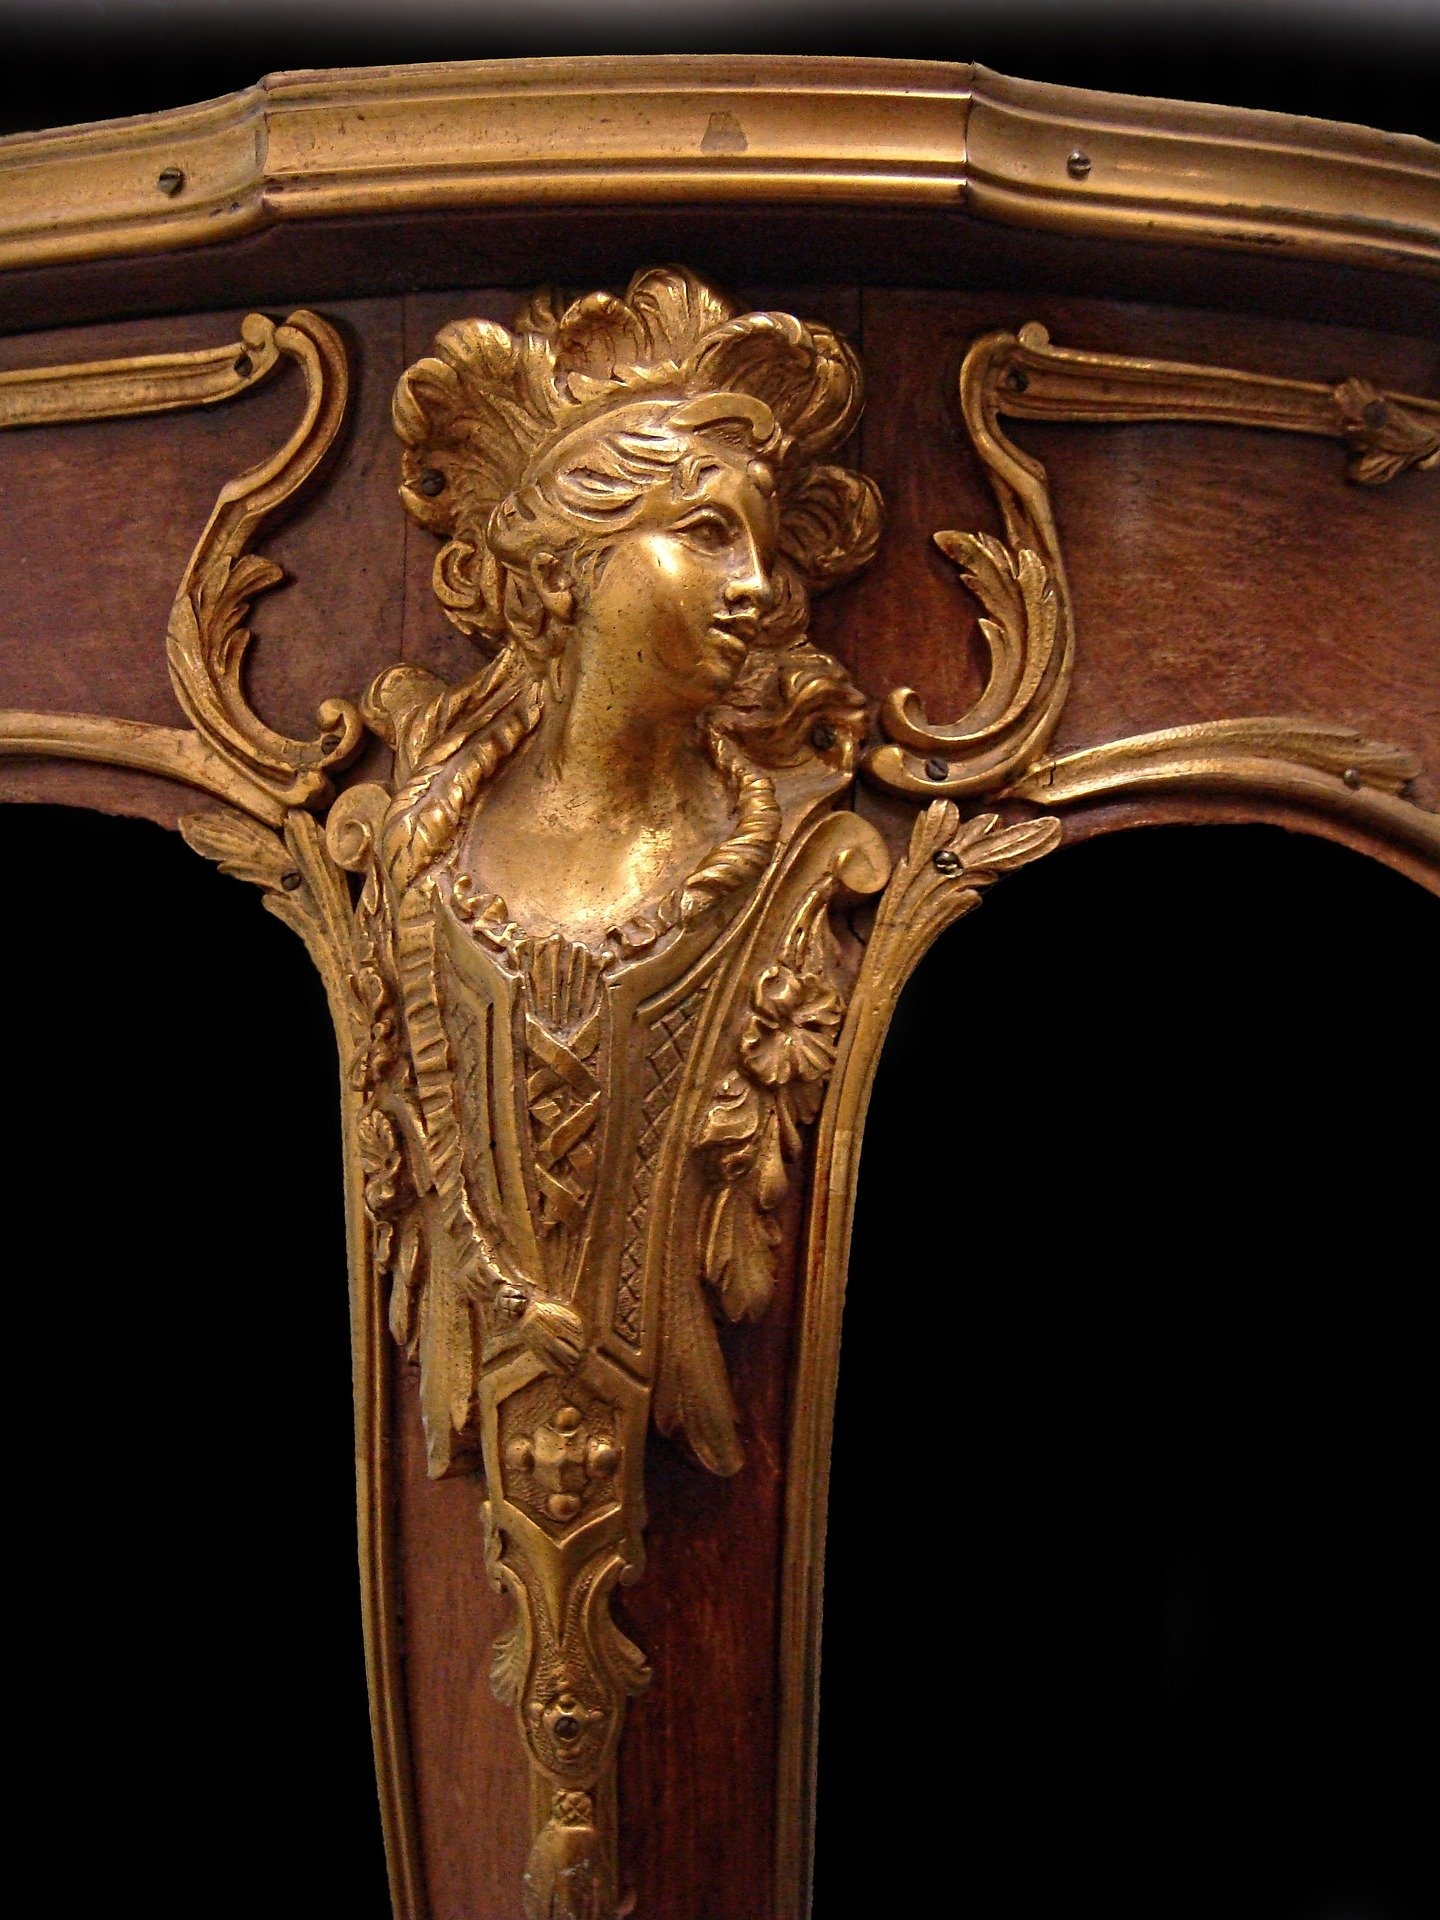 Looking up antique furniture value - What's It Worth? Find The Value Of Your Inherited Furniture